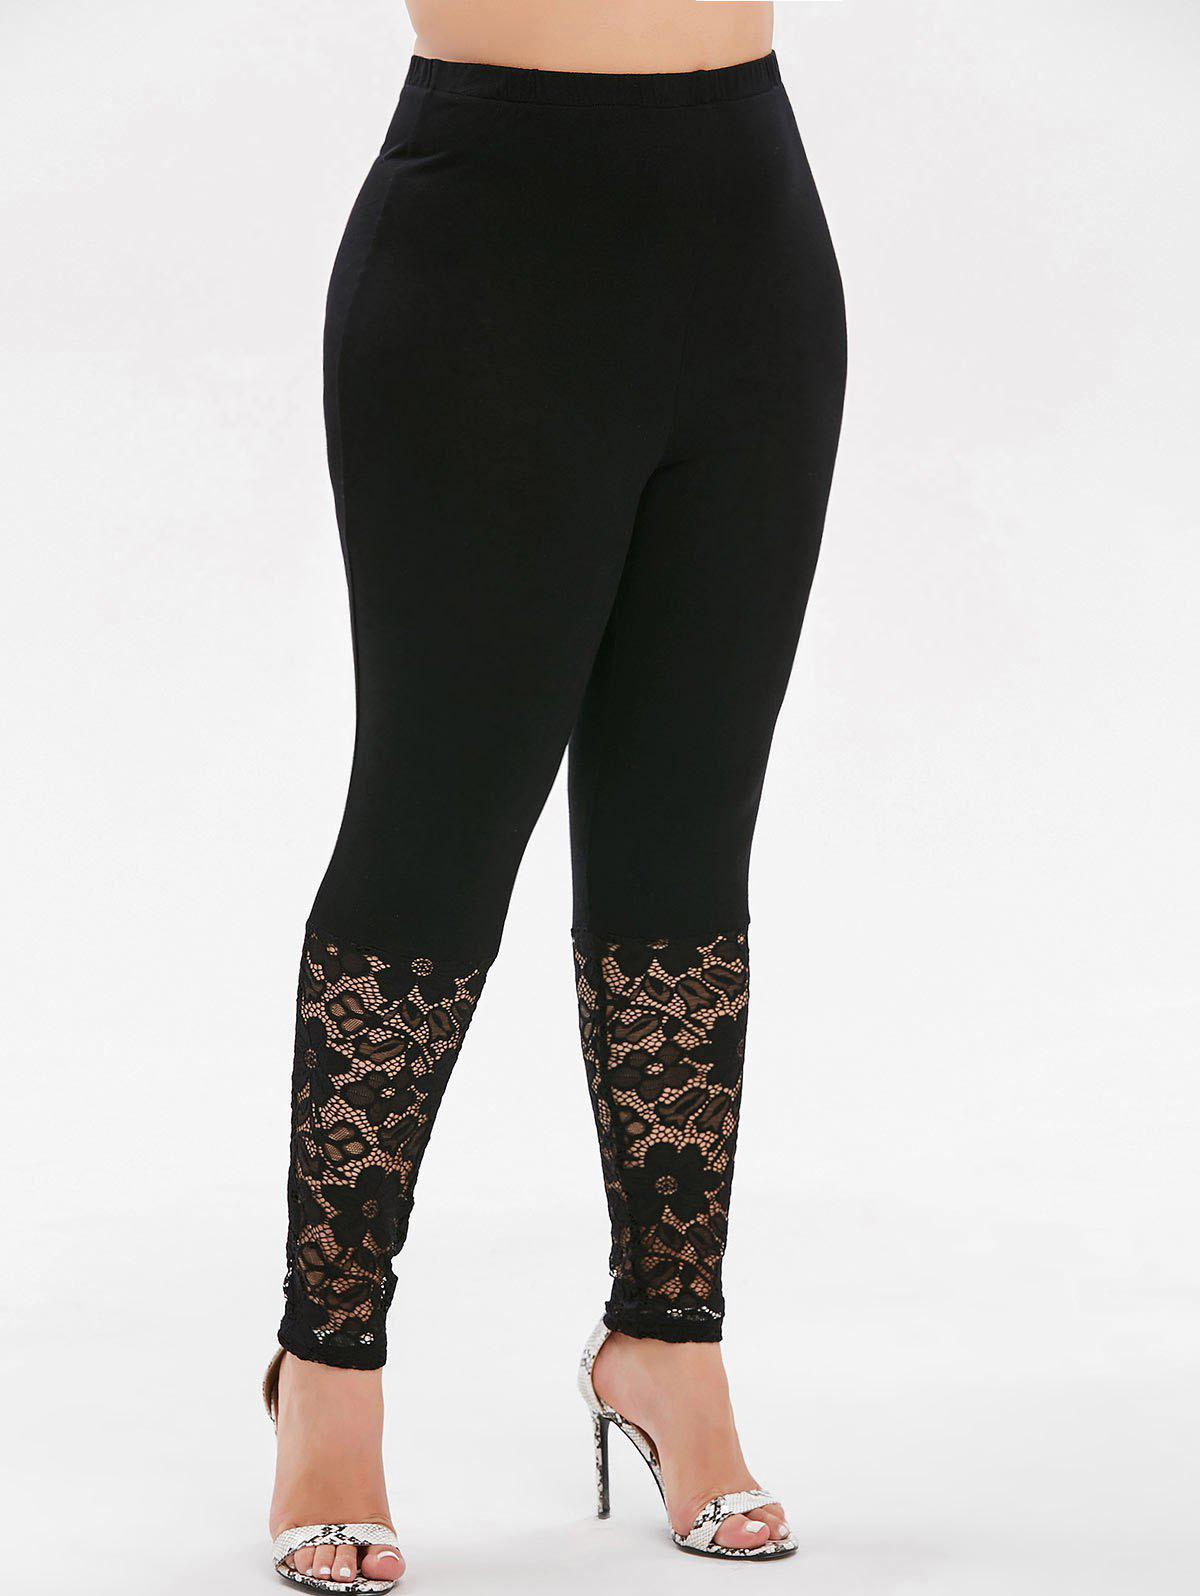 Store High Waisted Lace Panel Plus Size Leggings